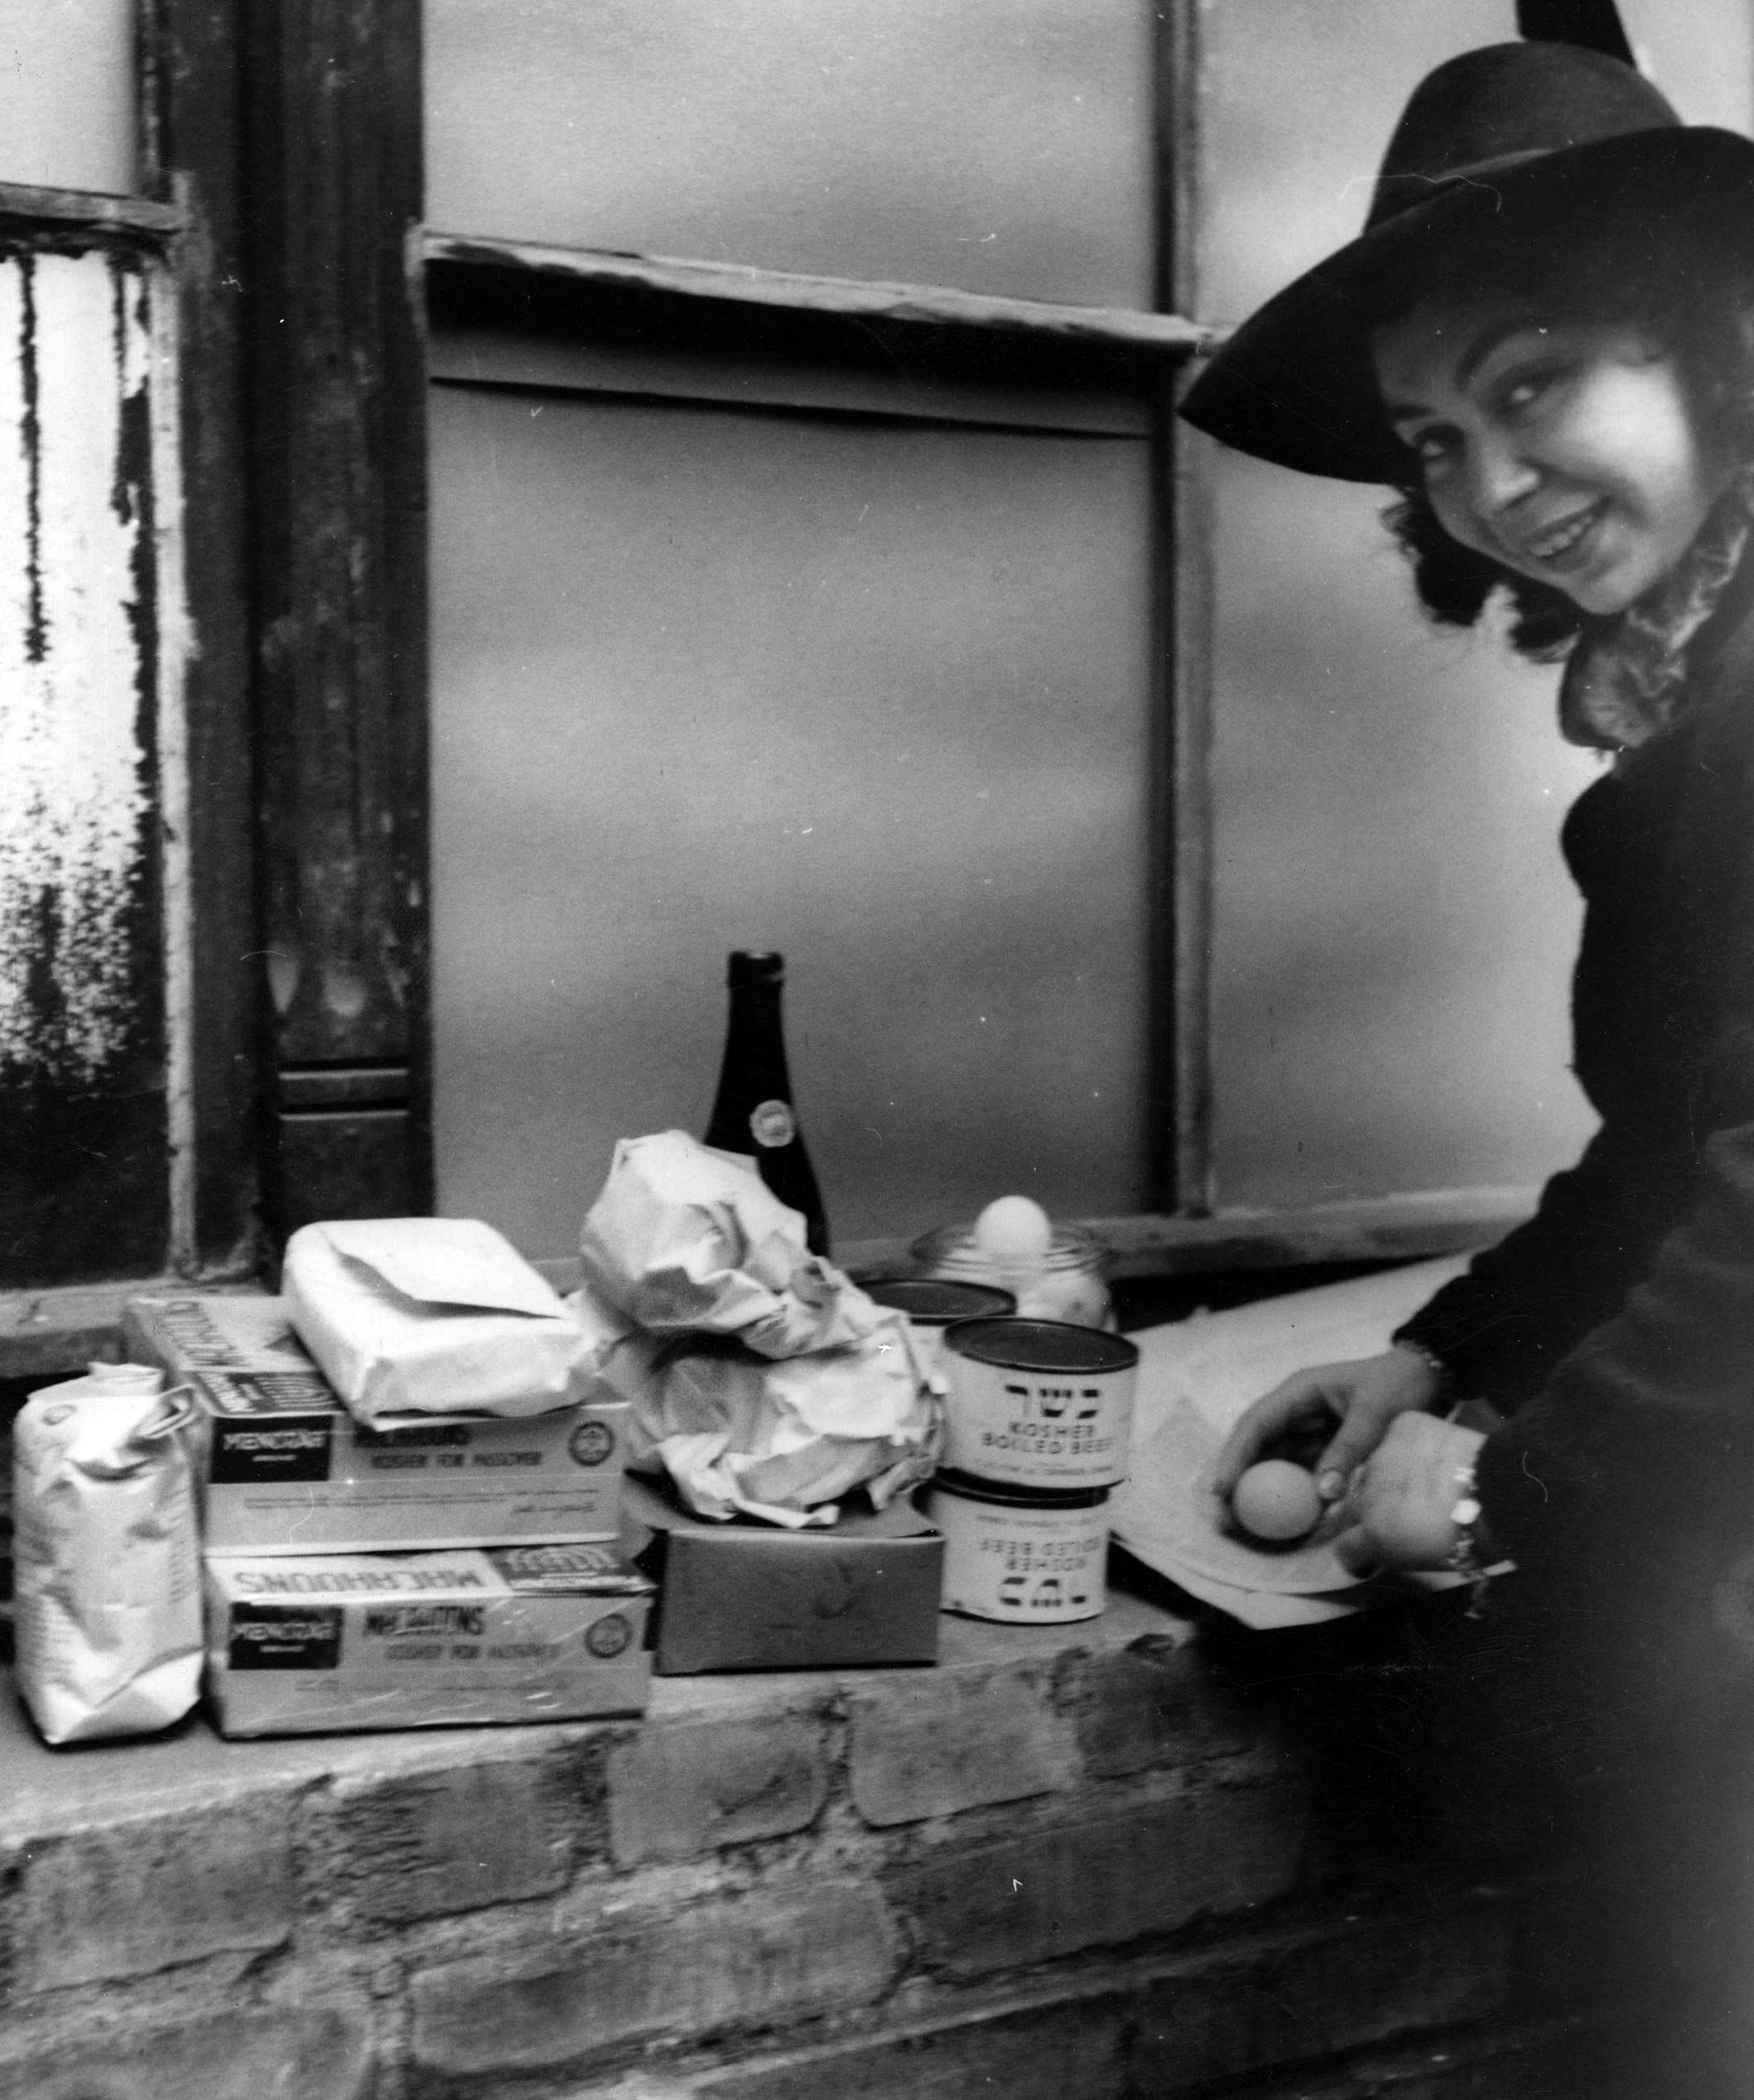 Woman with provisions supplied by JDC as part of Passover distribution. In an effort to give meaning to the first Passover spent in freedom after a decade under Nazi terror, JDC supplied over 2 million pounds of Passover supplies. Berlin, Germany, c. 1946. Photographer: Fritz Eschen, Eschen-Studio.